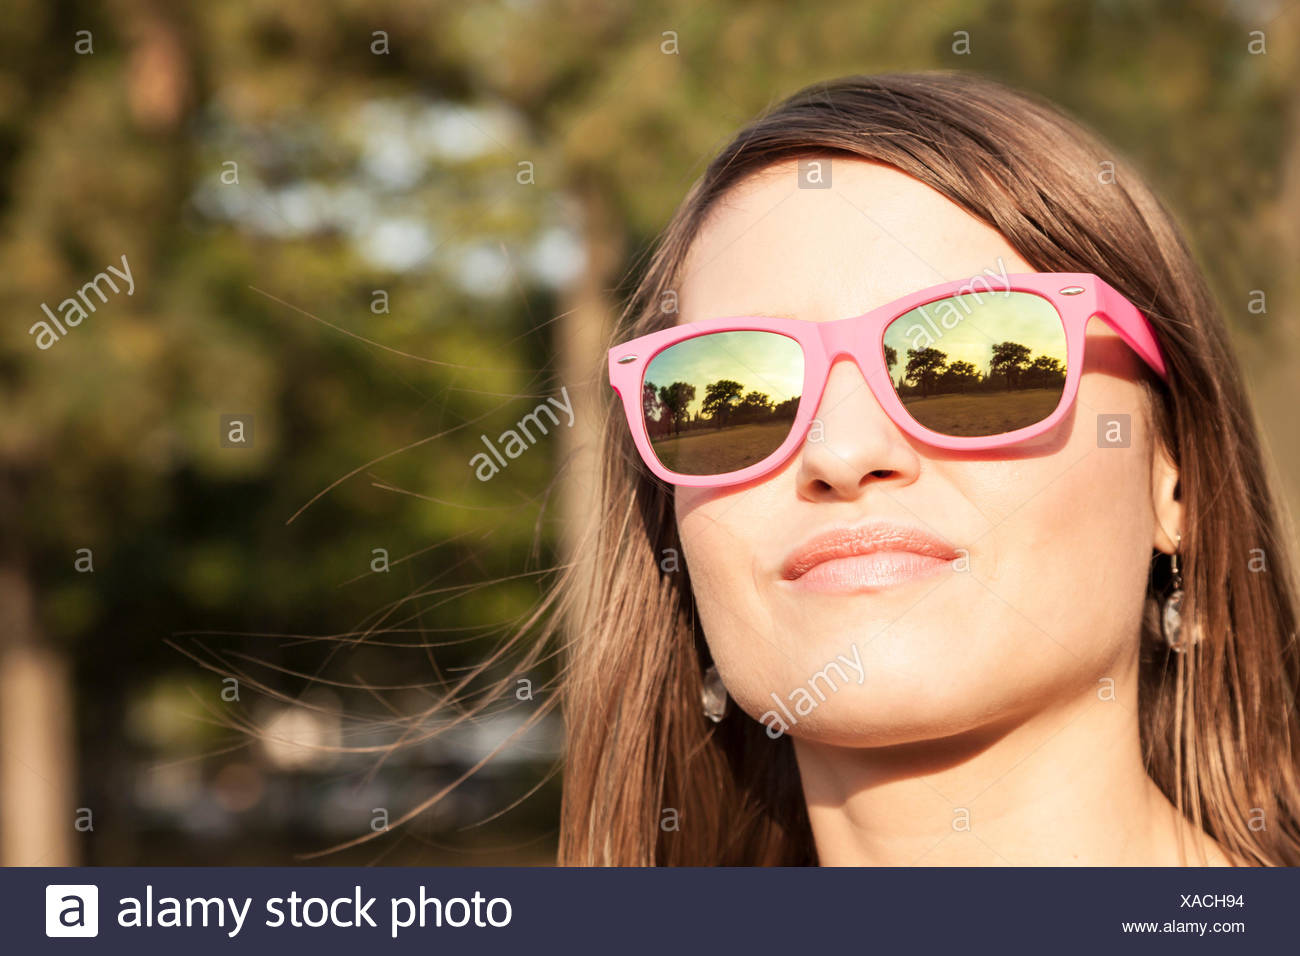 Young woman with pink sunglasses - Stock Image